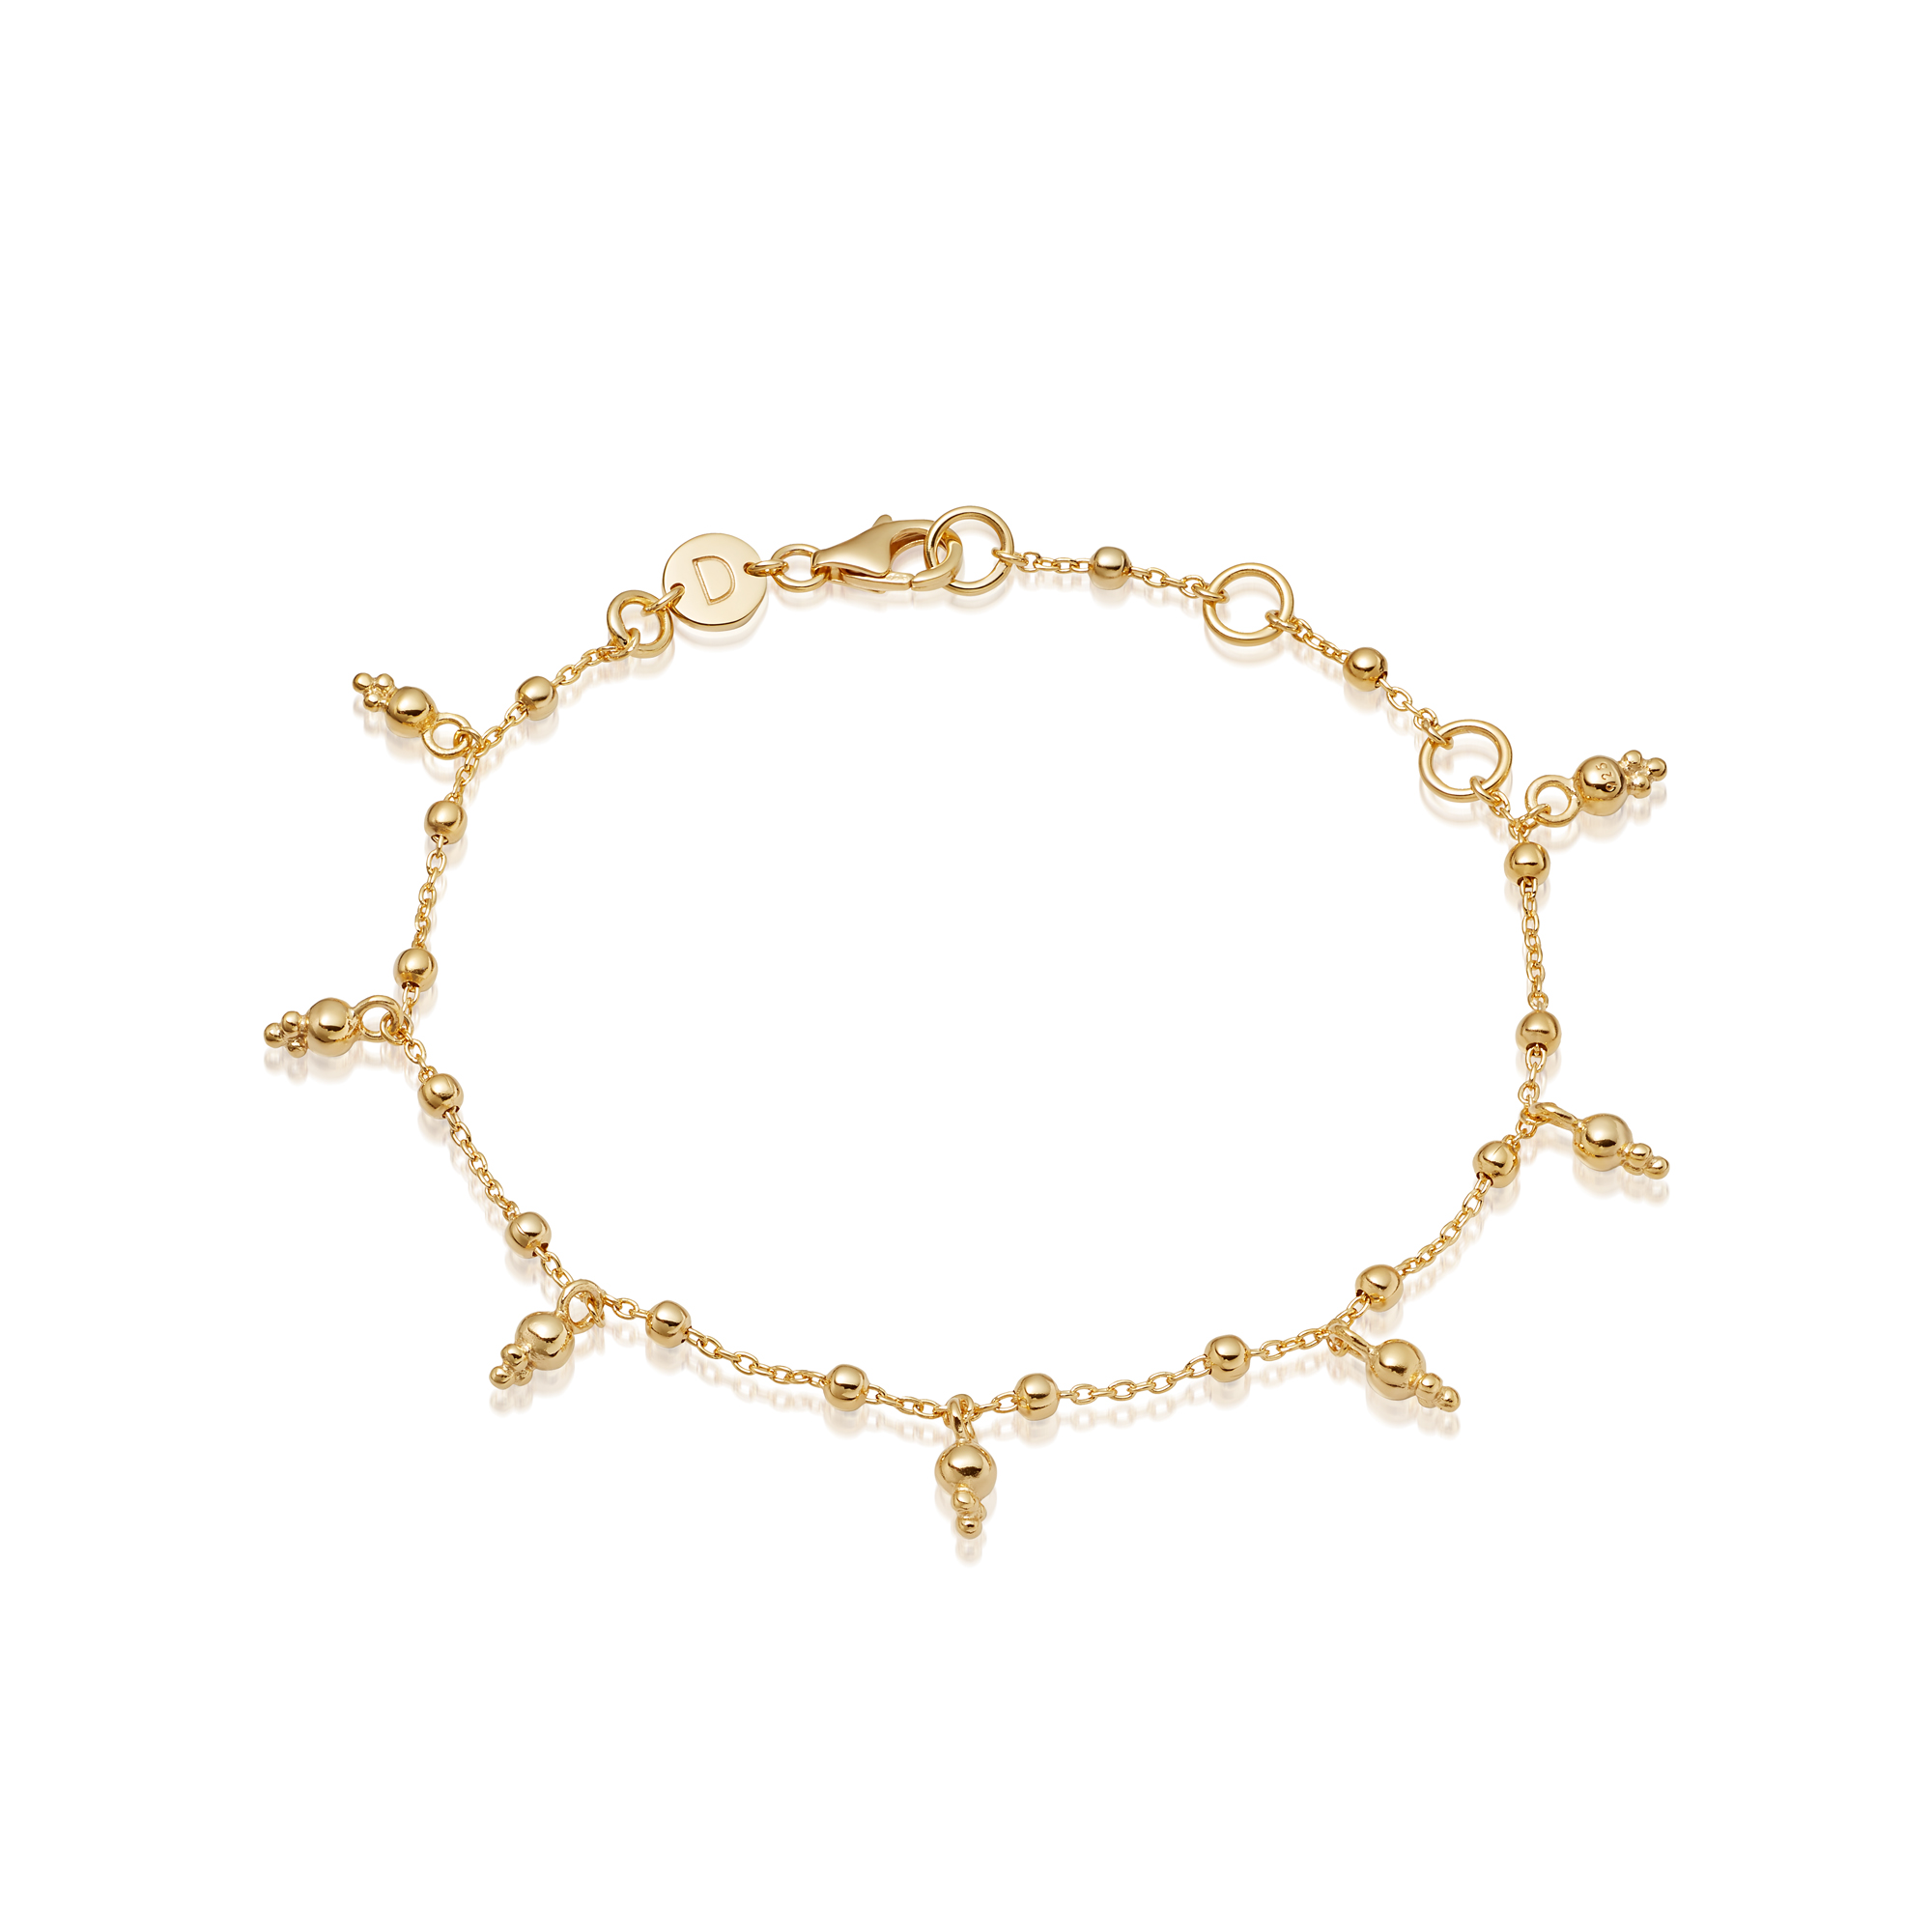 Stacked Beaded Charm Bracelet 18Ct Gold Plate